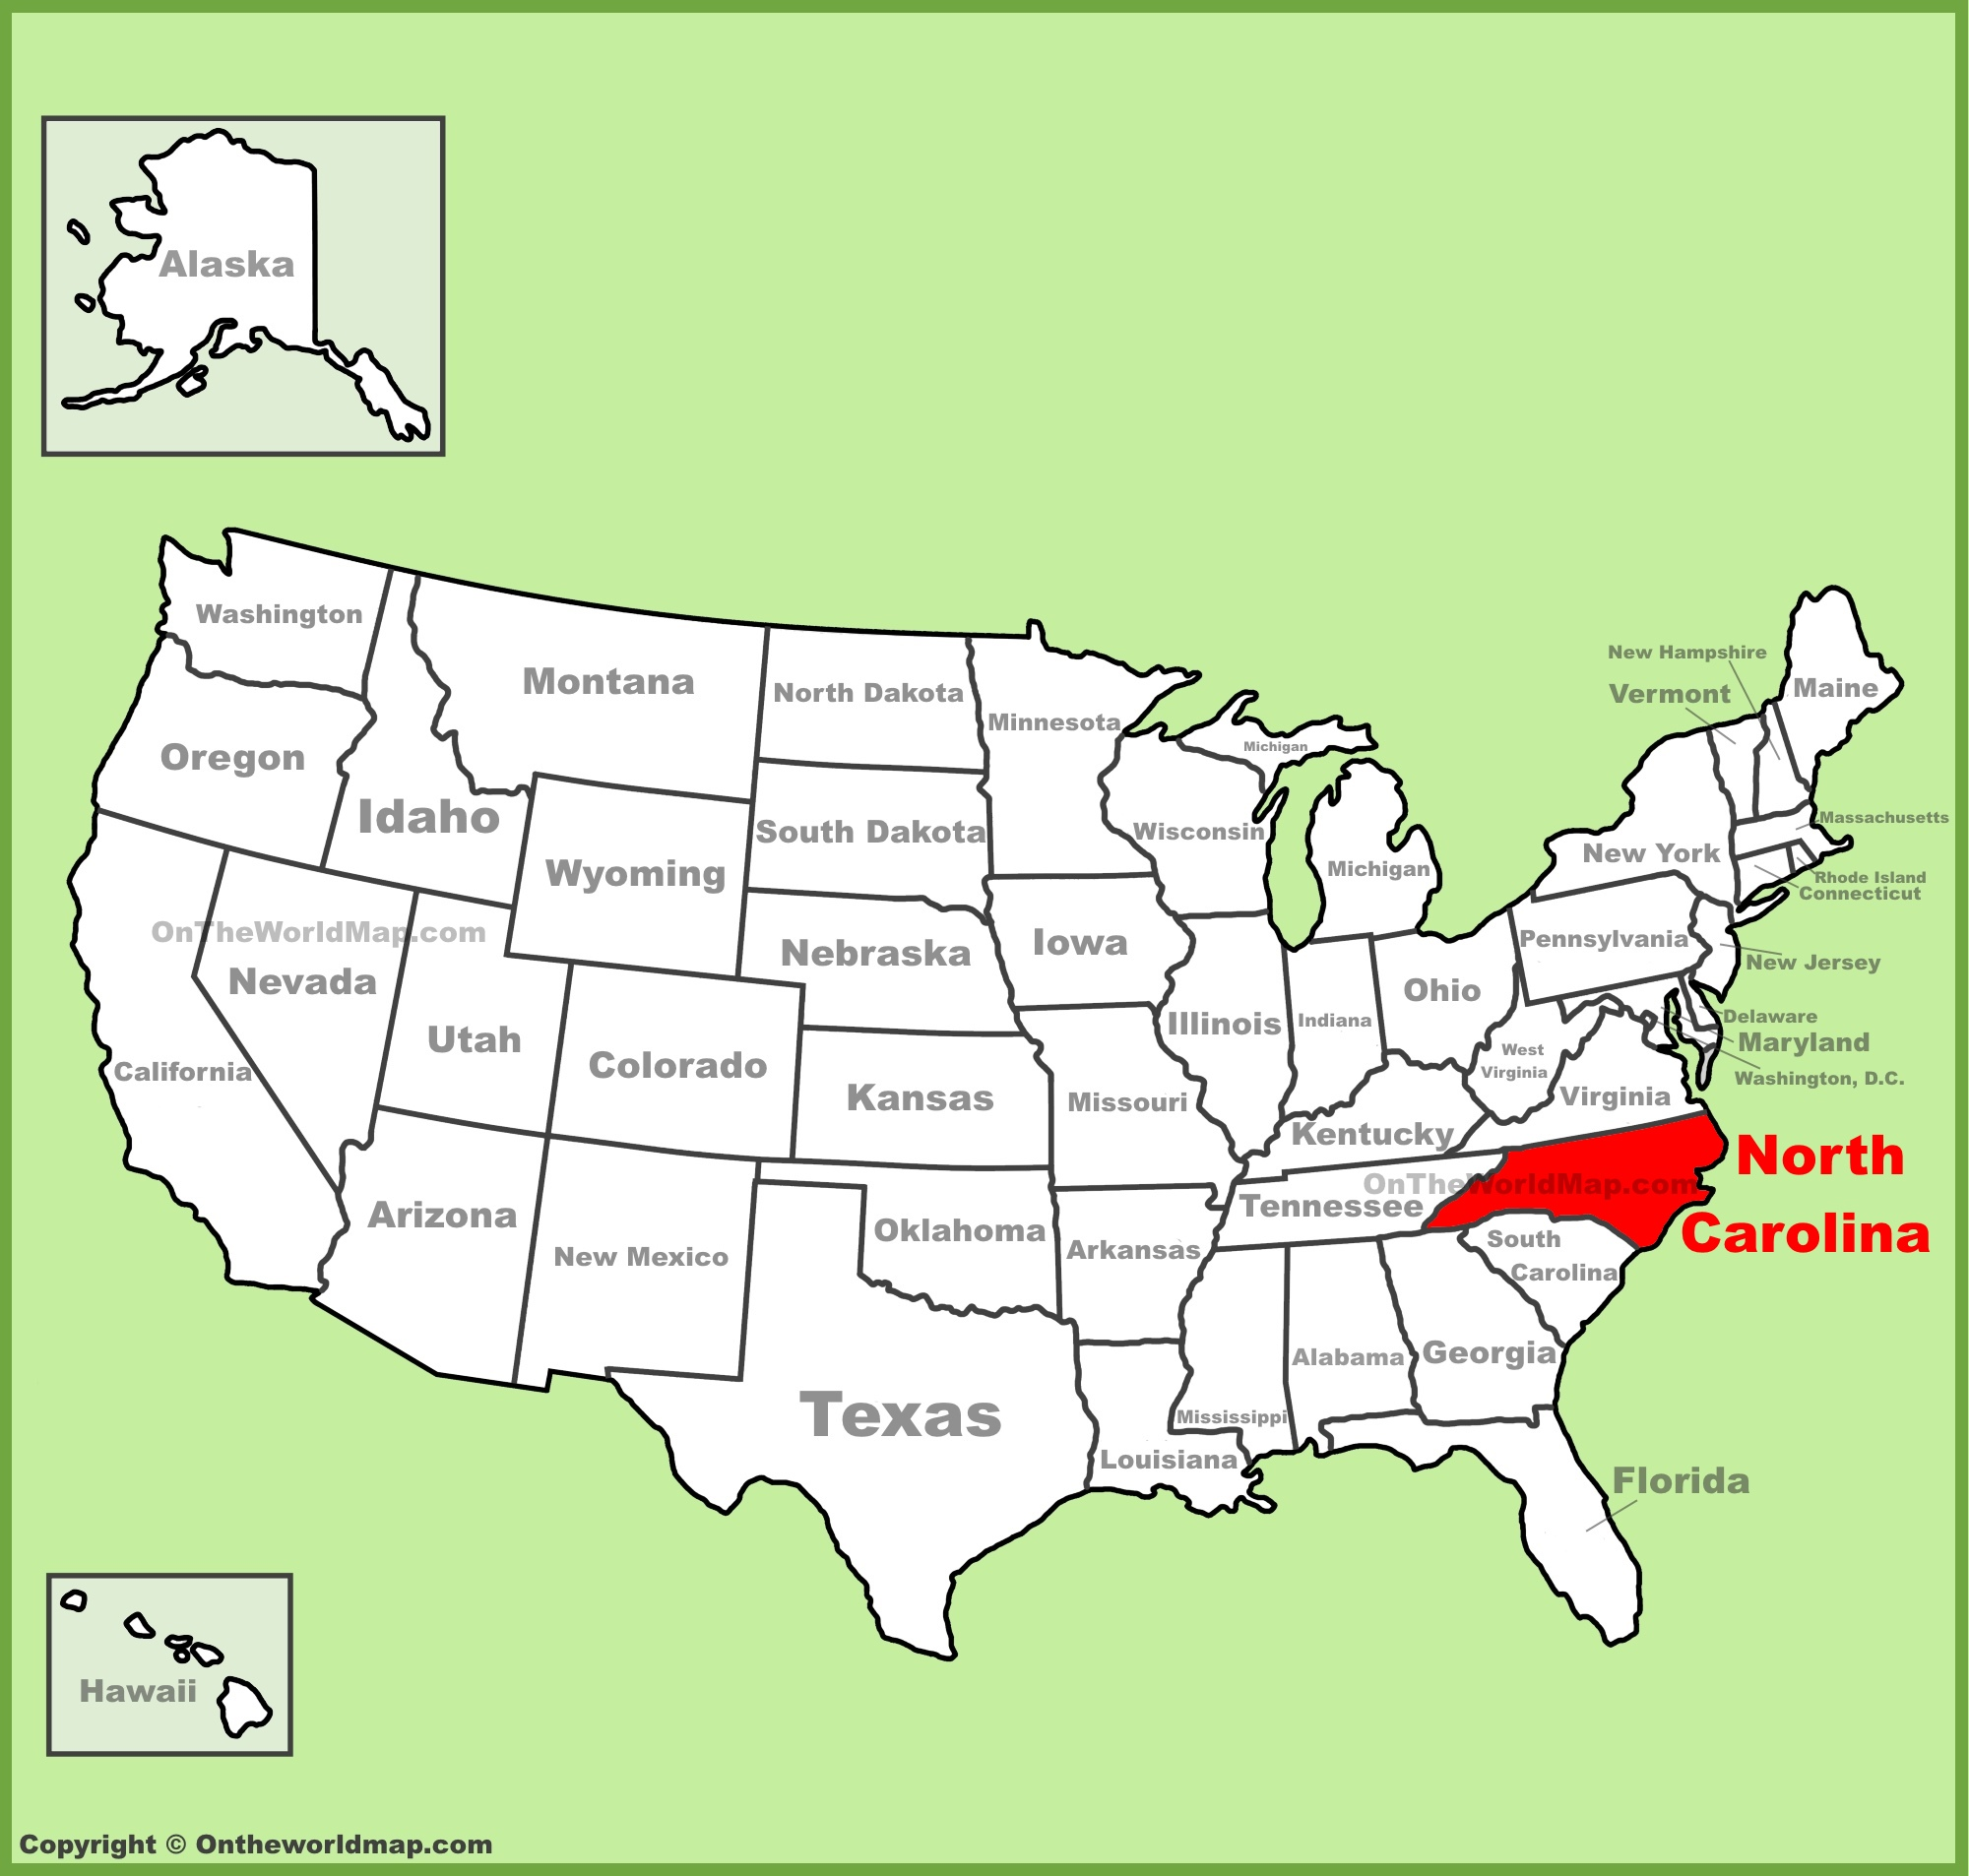 North Carolina State Maps USA Maps Of North Carolina NC - Map of n carolina